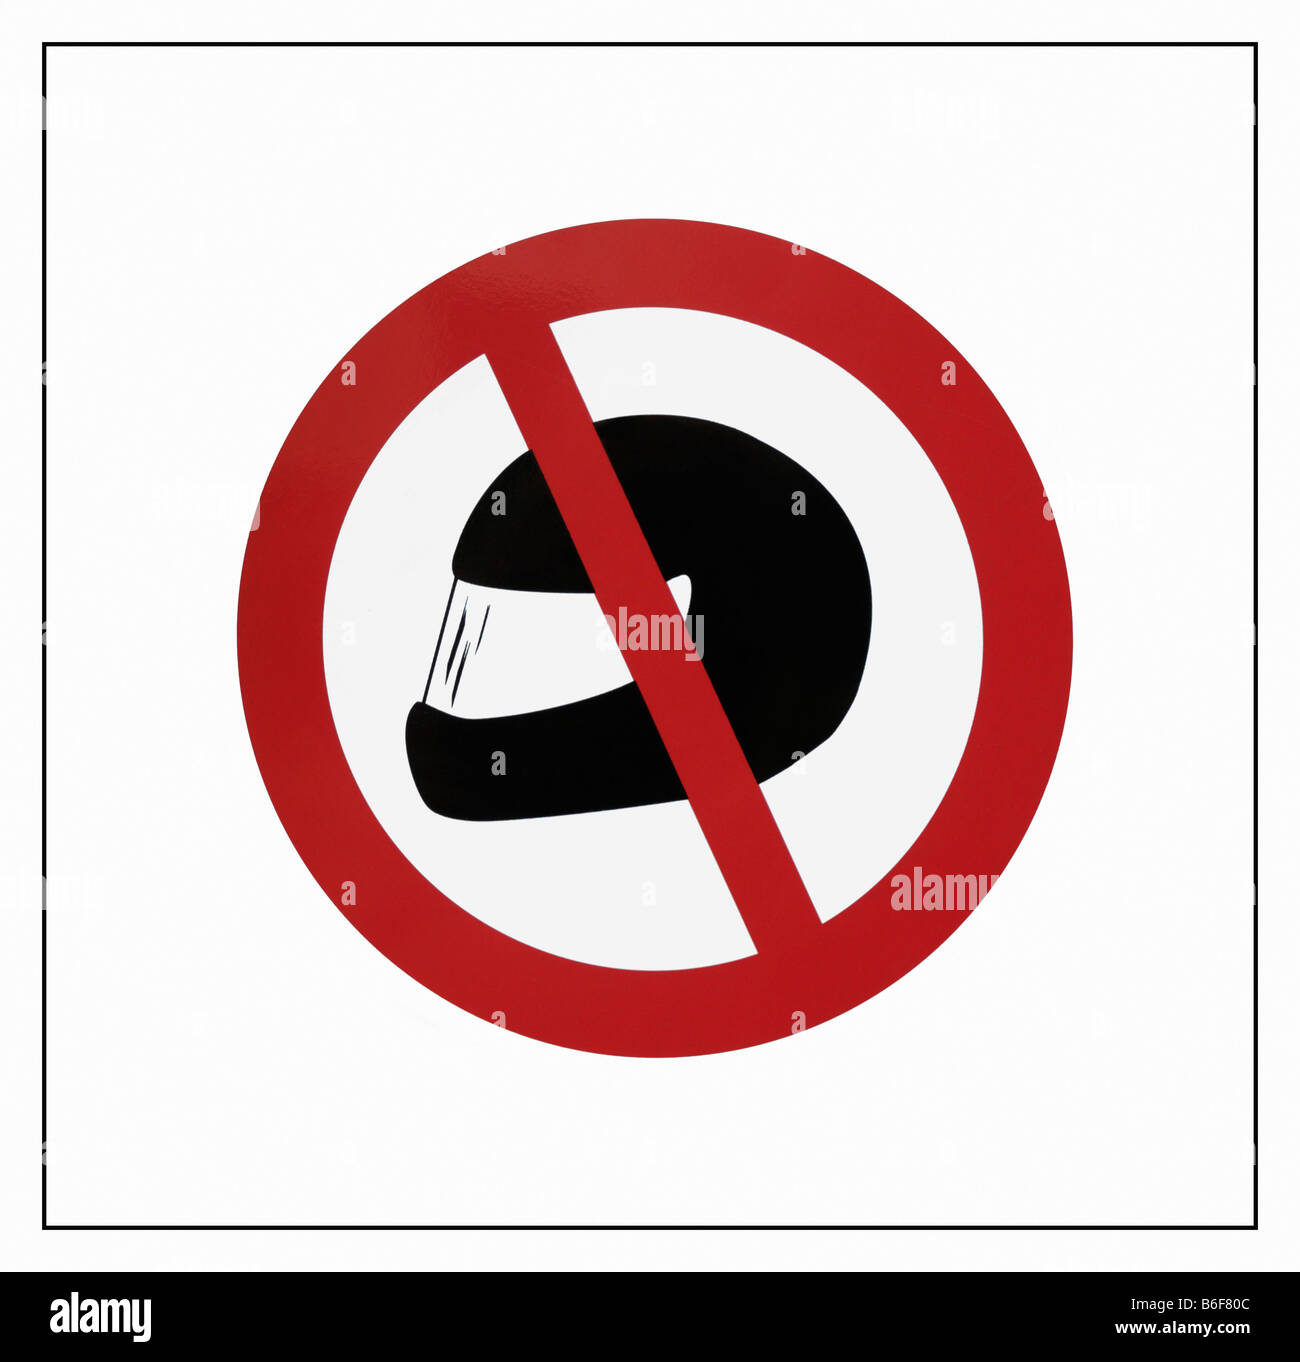 Prohibition sign: No wearing of motorcycle helmets, bank security measure - Stock Image